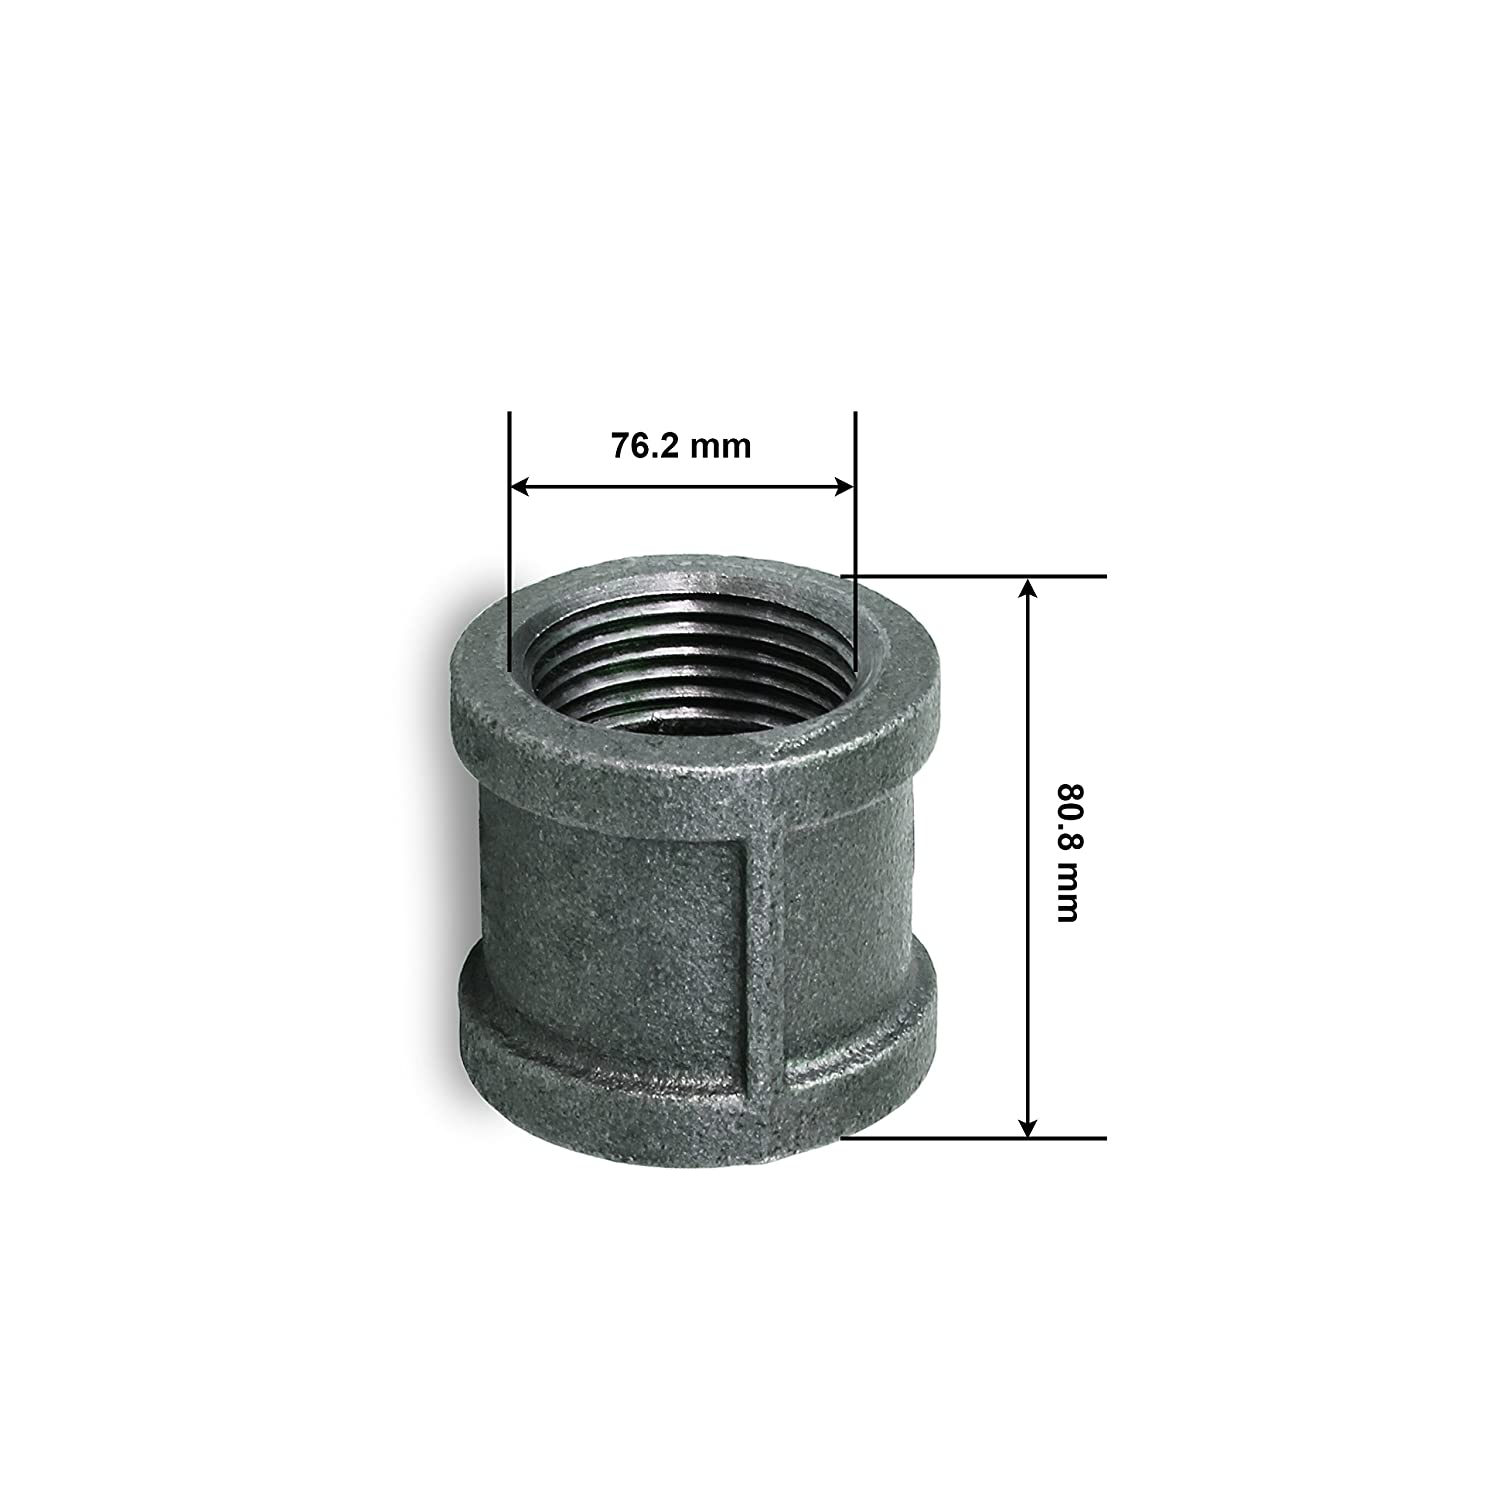 Everflow BMCPL400 4 Straight Malleable Iron Coupling With Black Coating And With Banded Ends